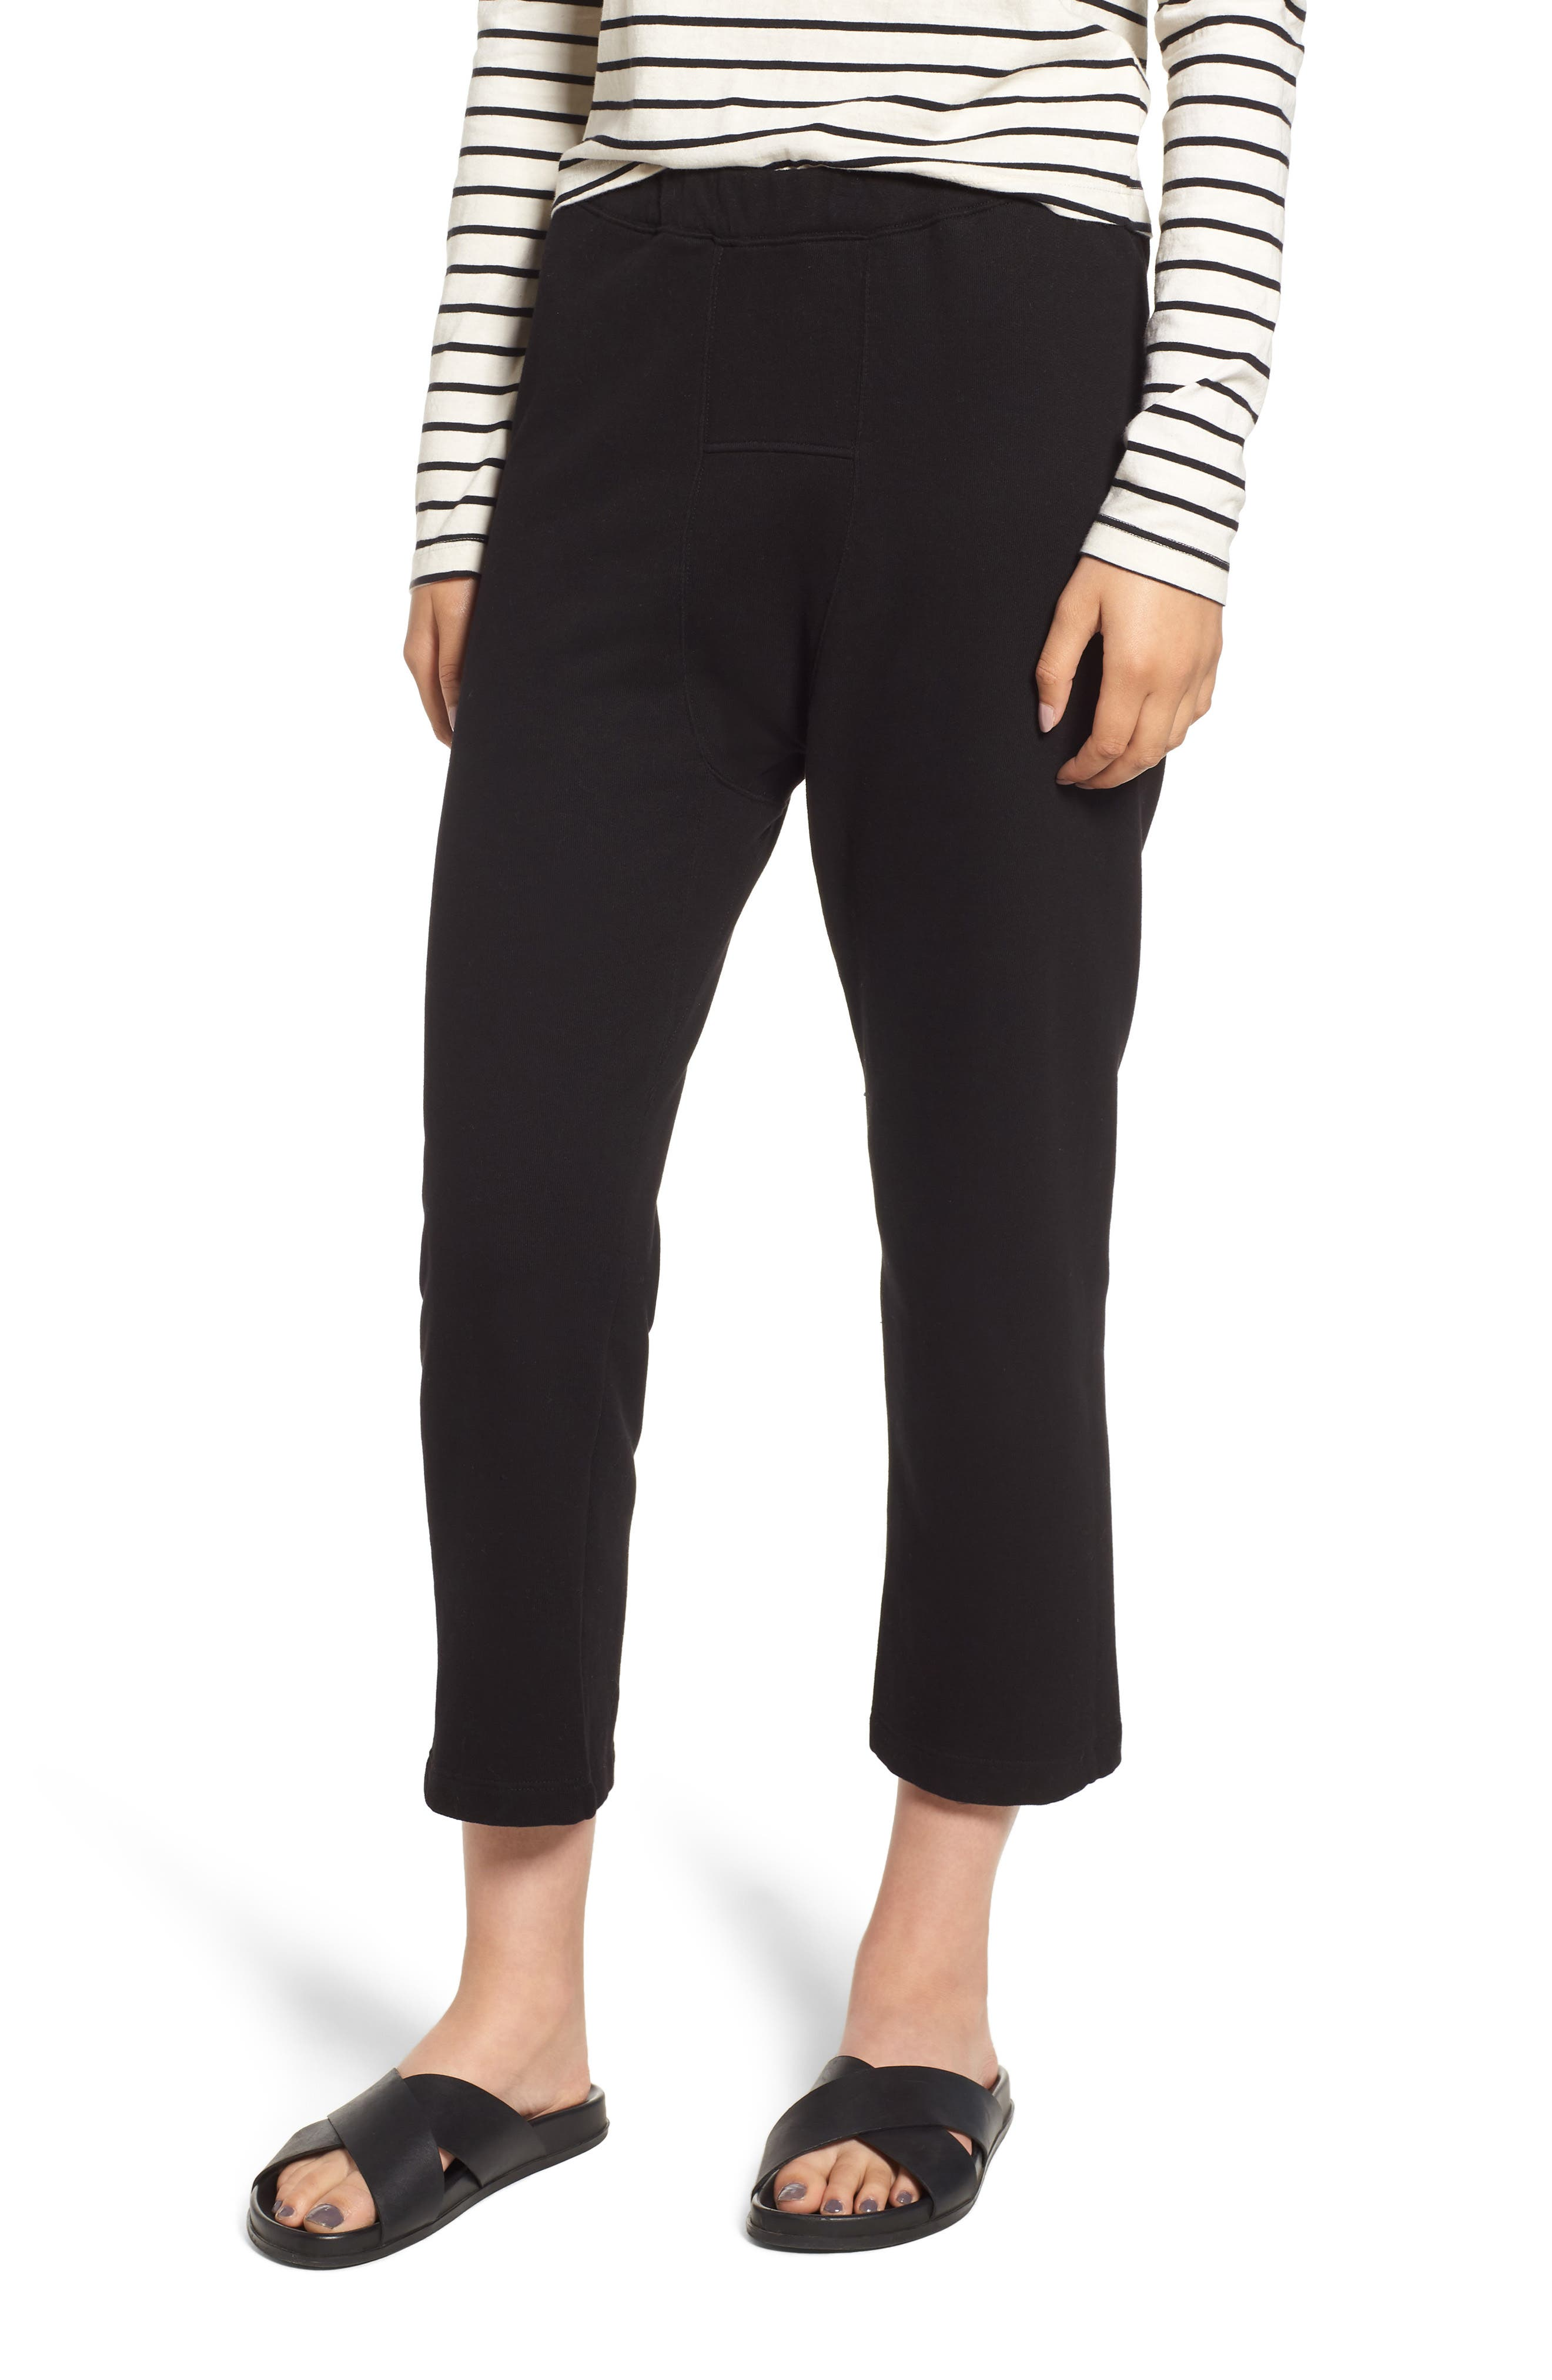 STATESIDE FRENCH TERRY CROP SWEATPANTS